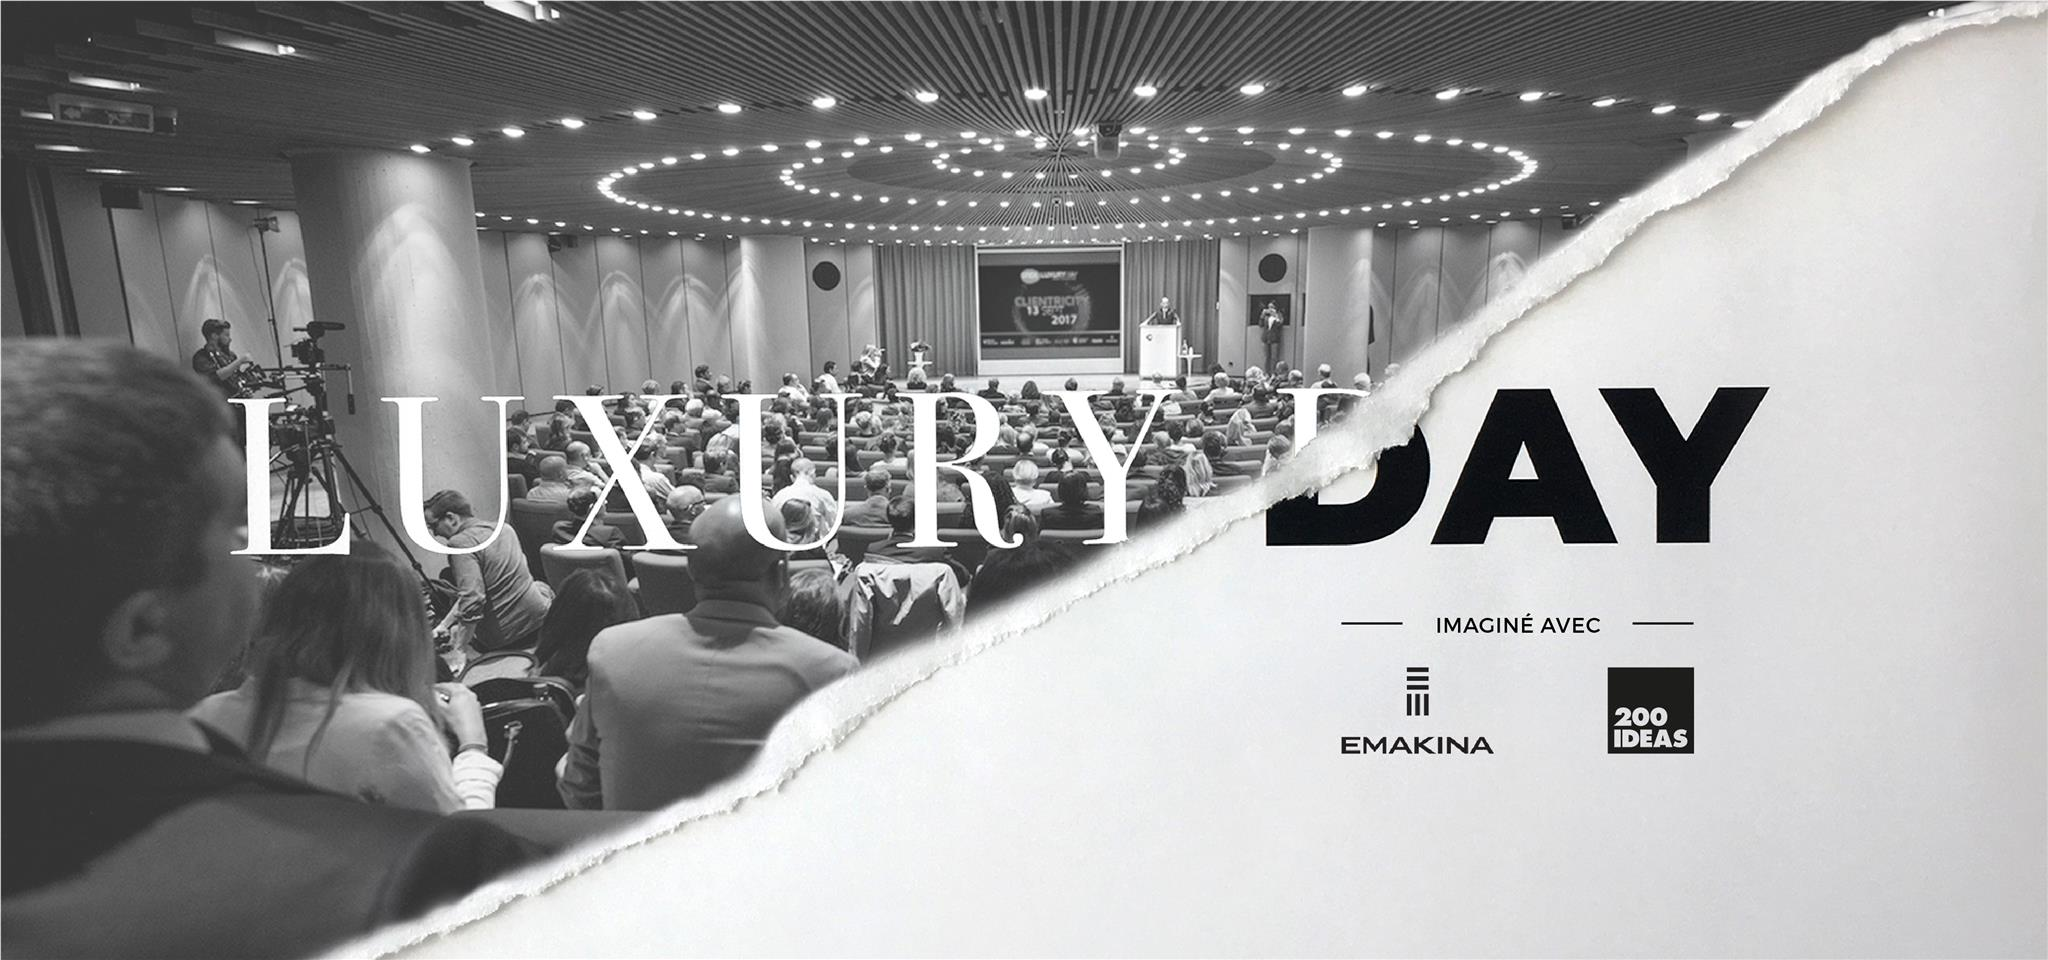 crea-luxuryday-4e-edition-header-desktop